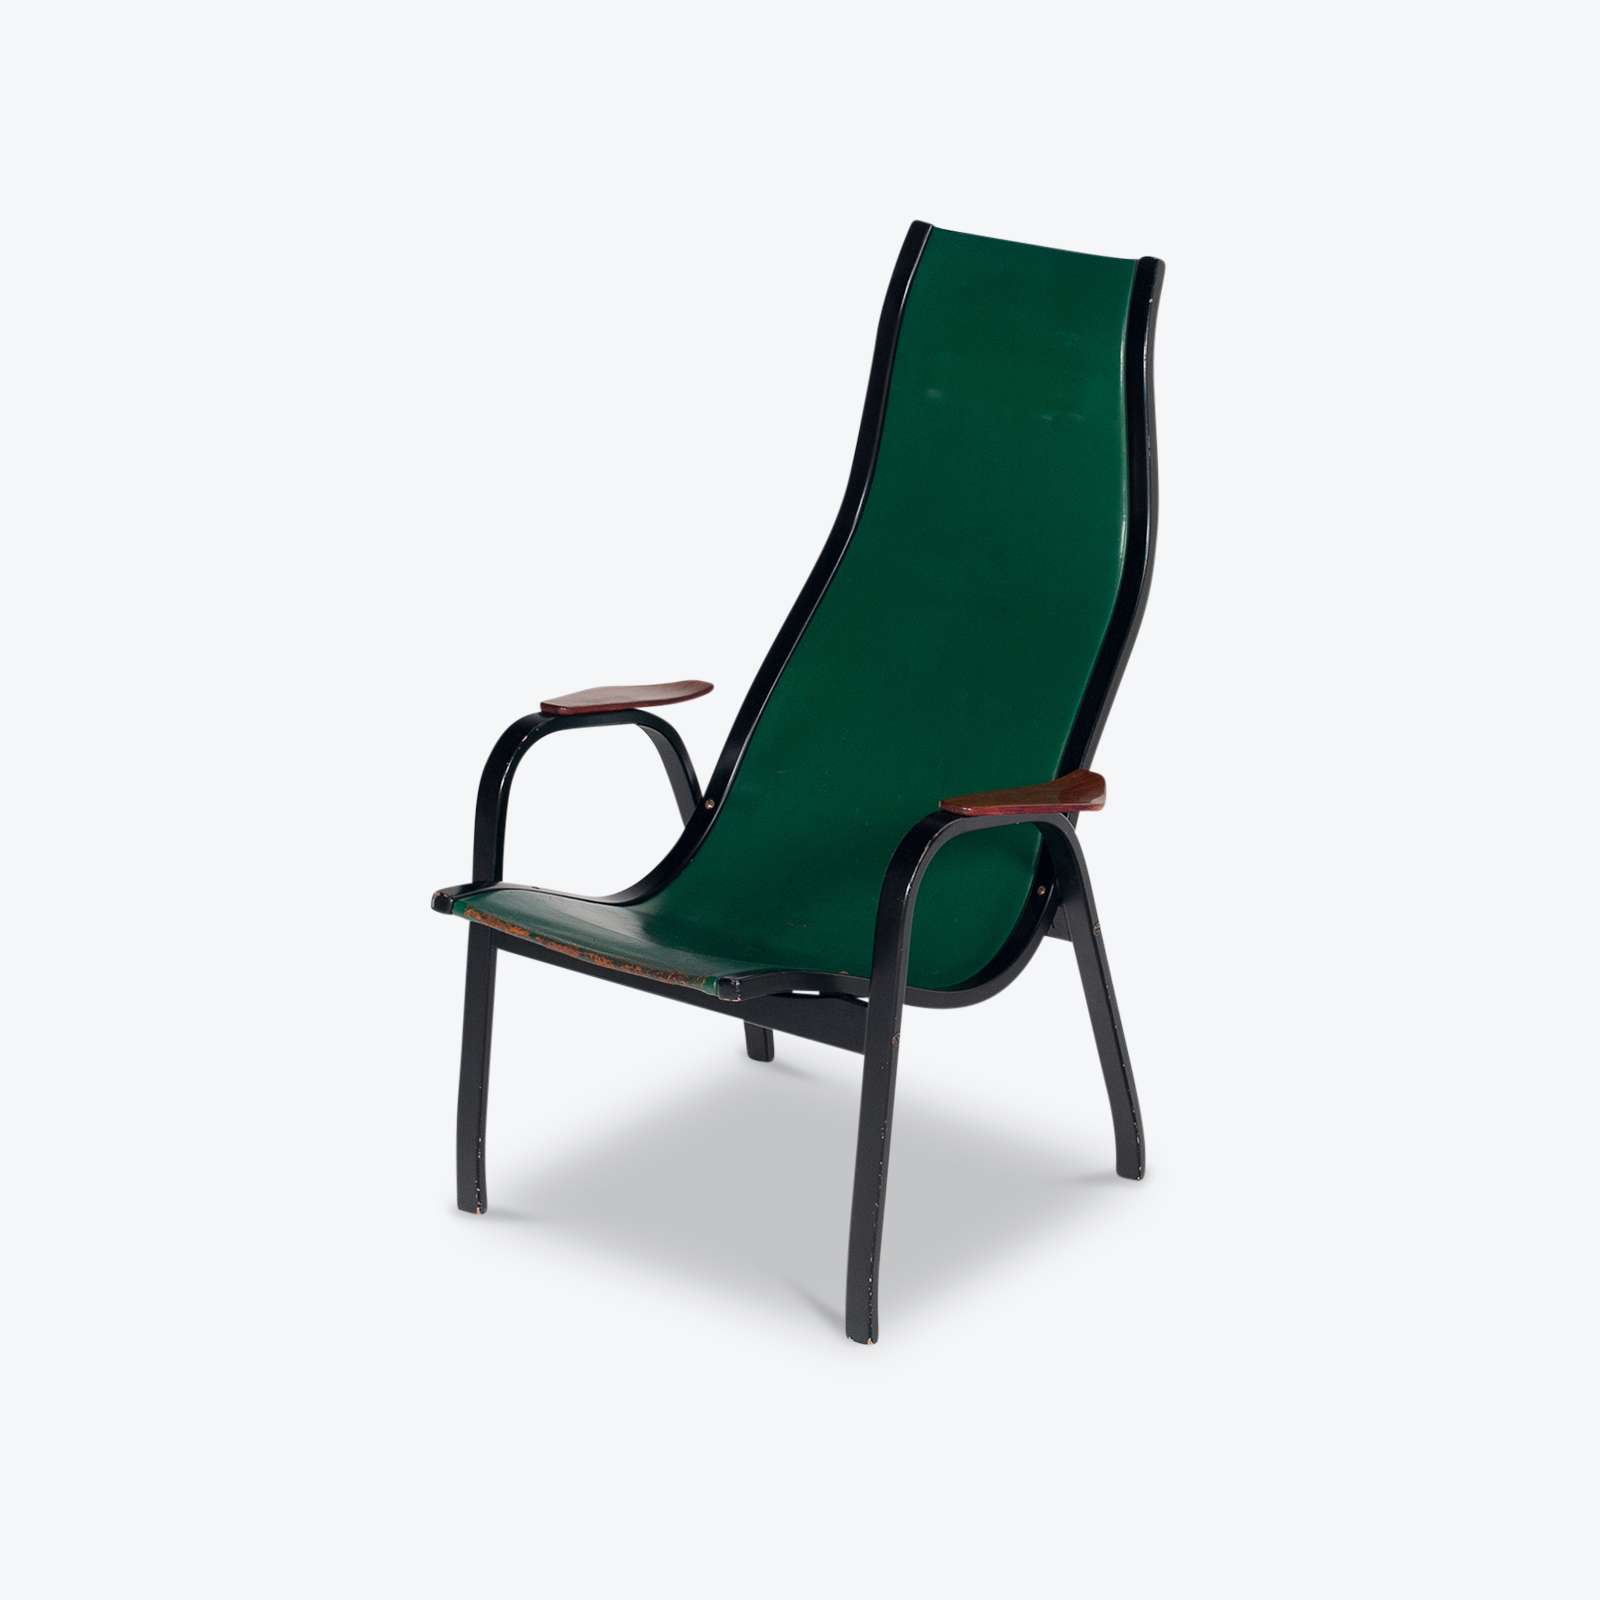 Kurva Lounge Chair By Yngve Ekstrom For Swedese In Green Leather, 1950s, Sweden Hero